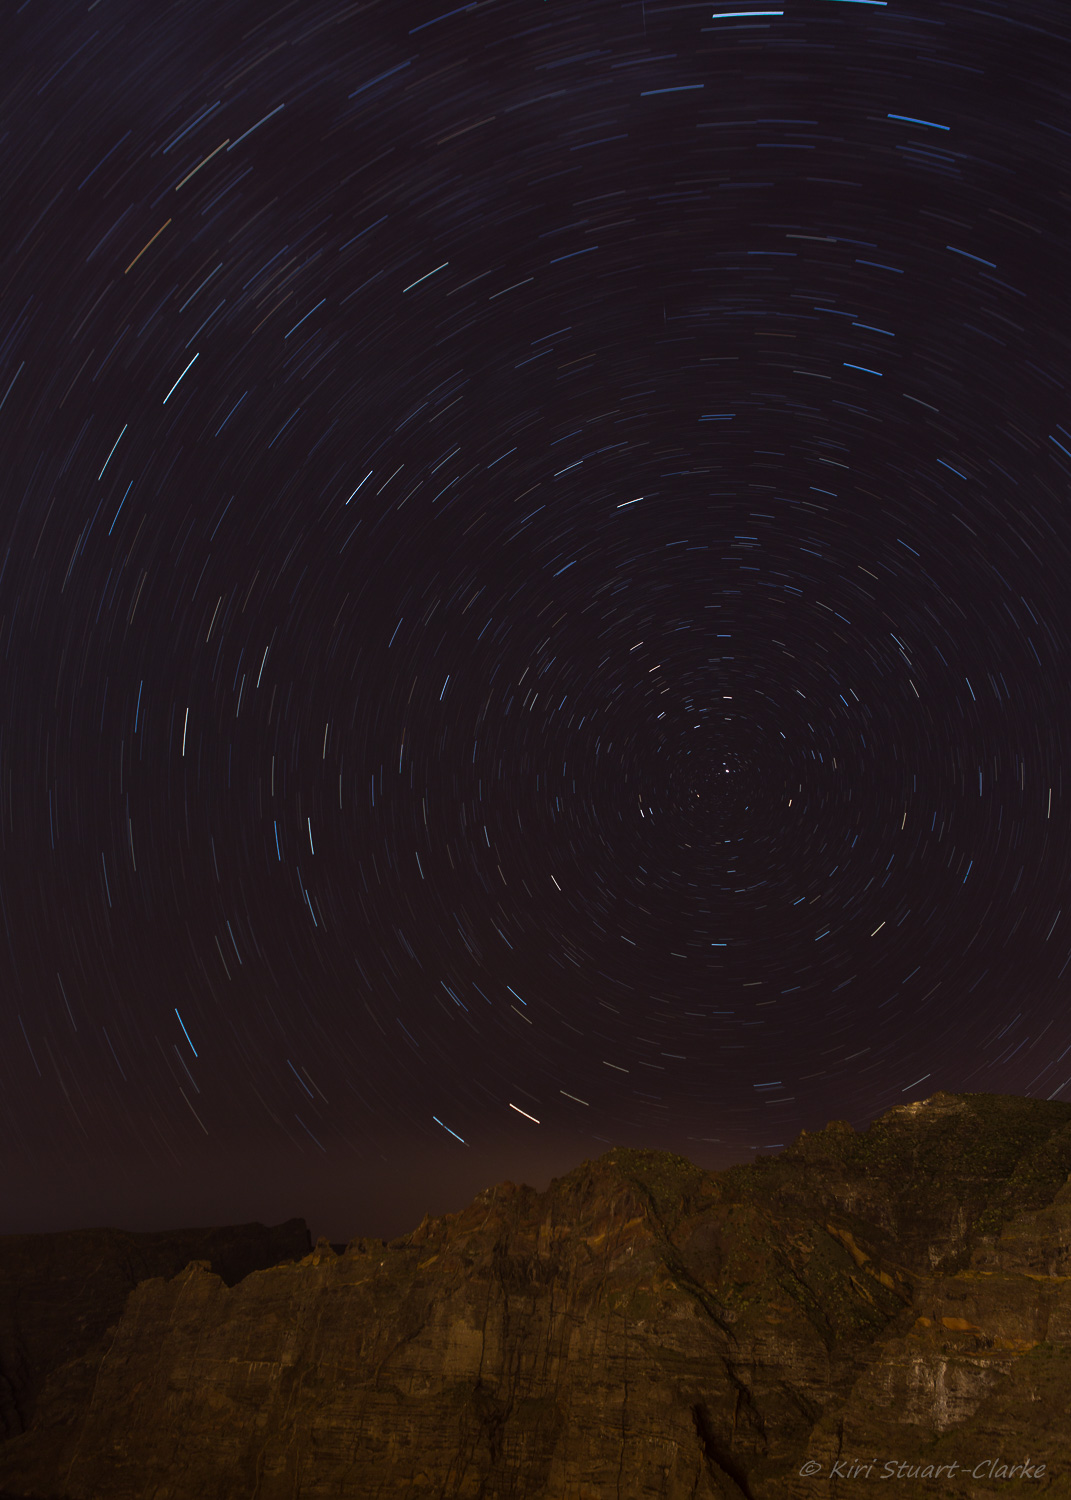 Taken over 1236 seconds at f4.0 and ISO 100